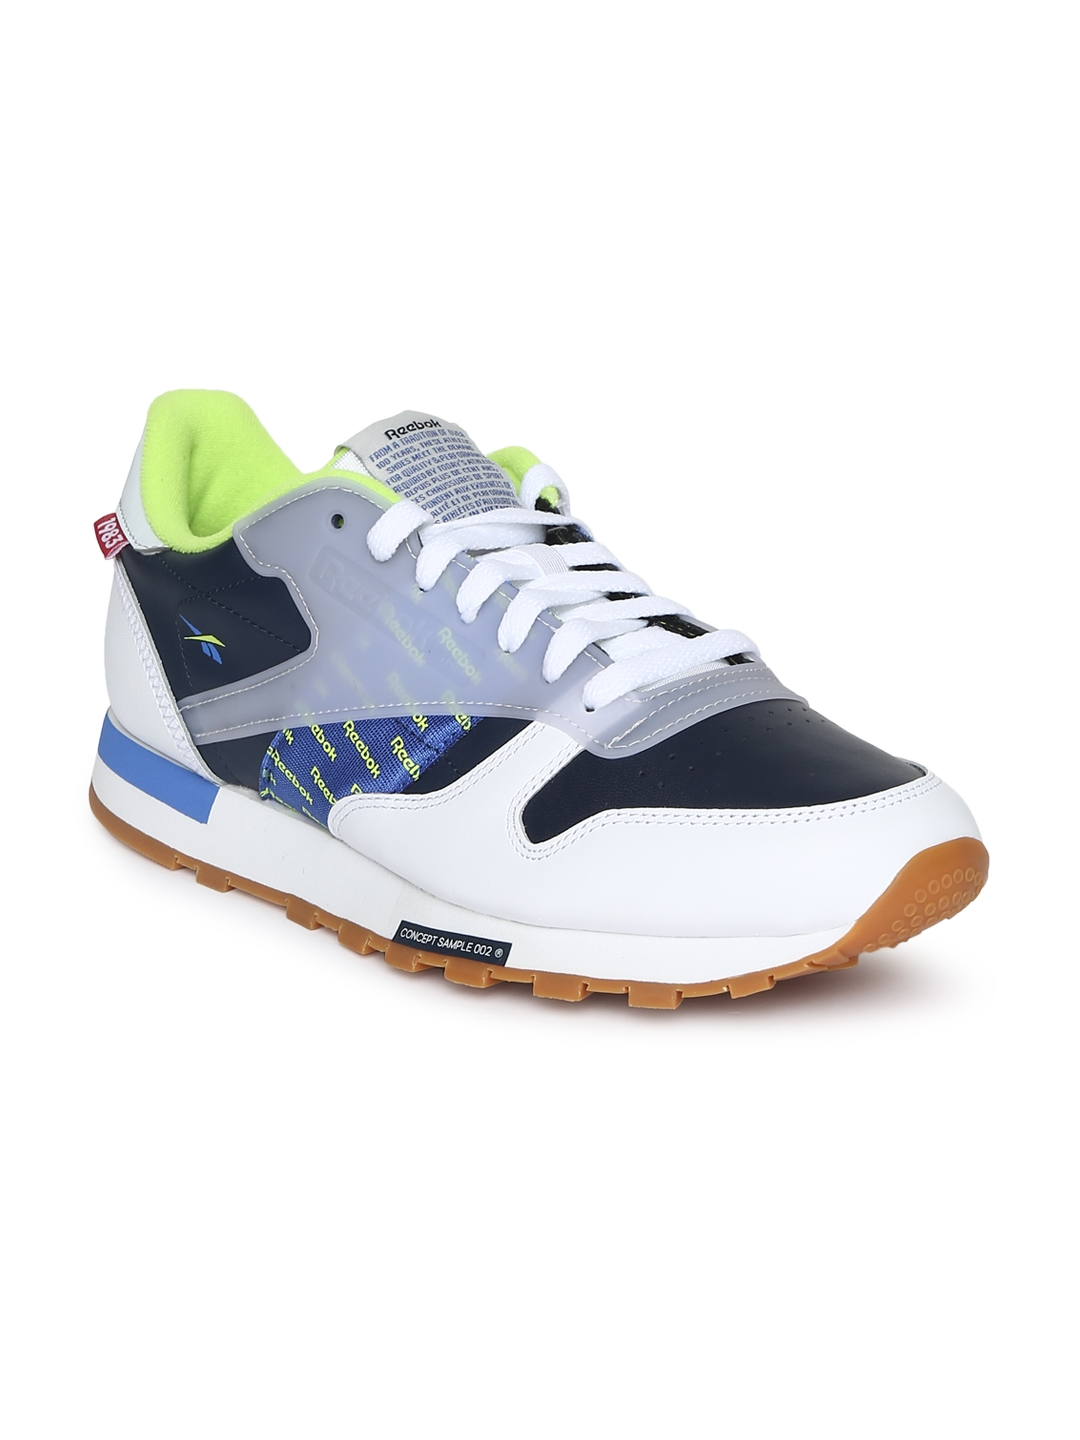 1b41a39af78e Buy Reebok Classic Unisex White Leather Sneakers - Casual Shoes for ...